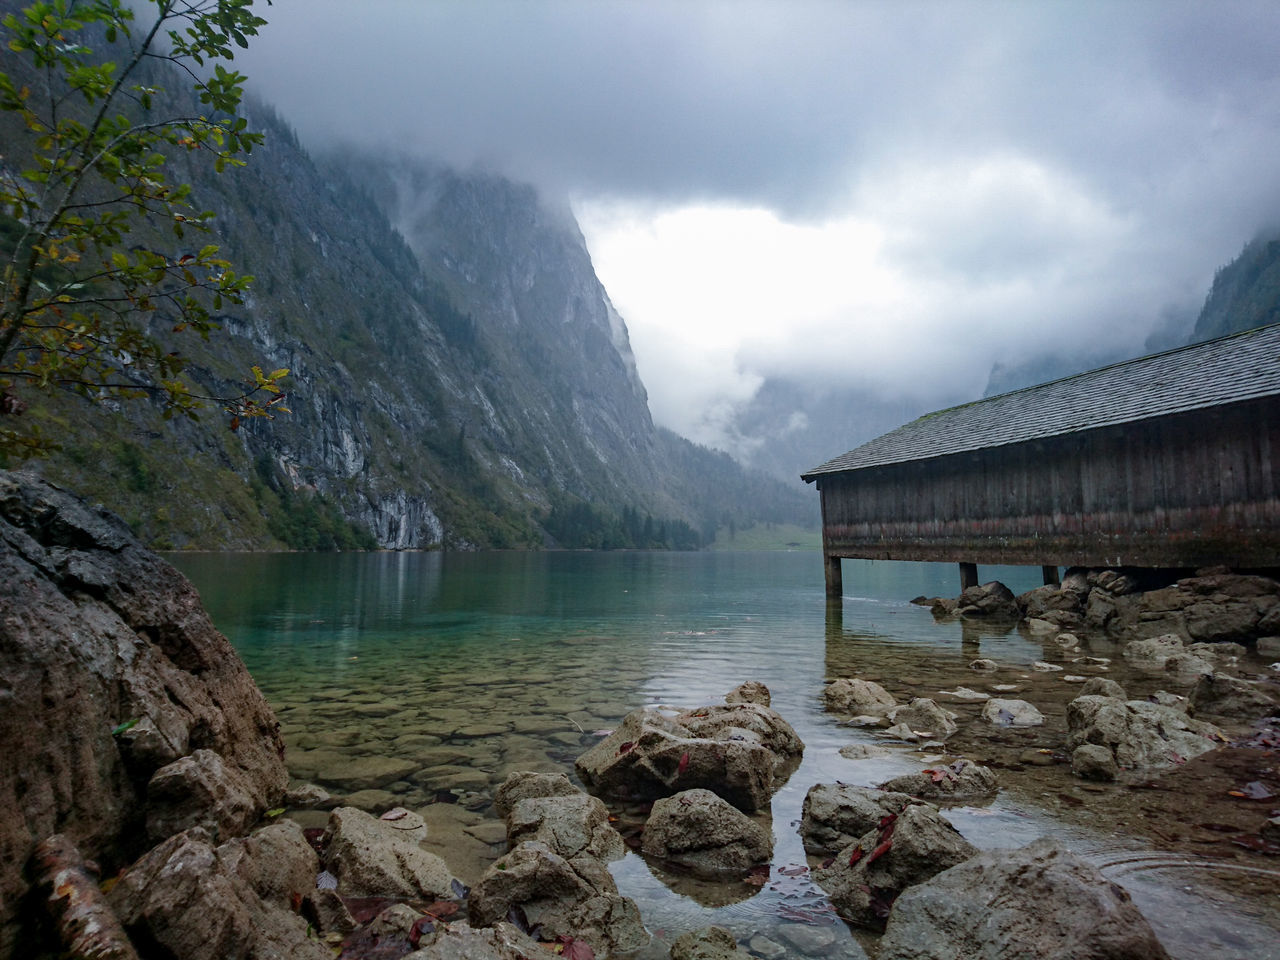 Water Lake Reflection Architecture Cloud - Sky No People Tree Outdoors Sky Nature Famous Tourist Attractions Beauty In Nature Cold Days Foggy Morning Mountain Obersee Germany Hut Travel Destinations Clearwater Cloudscape